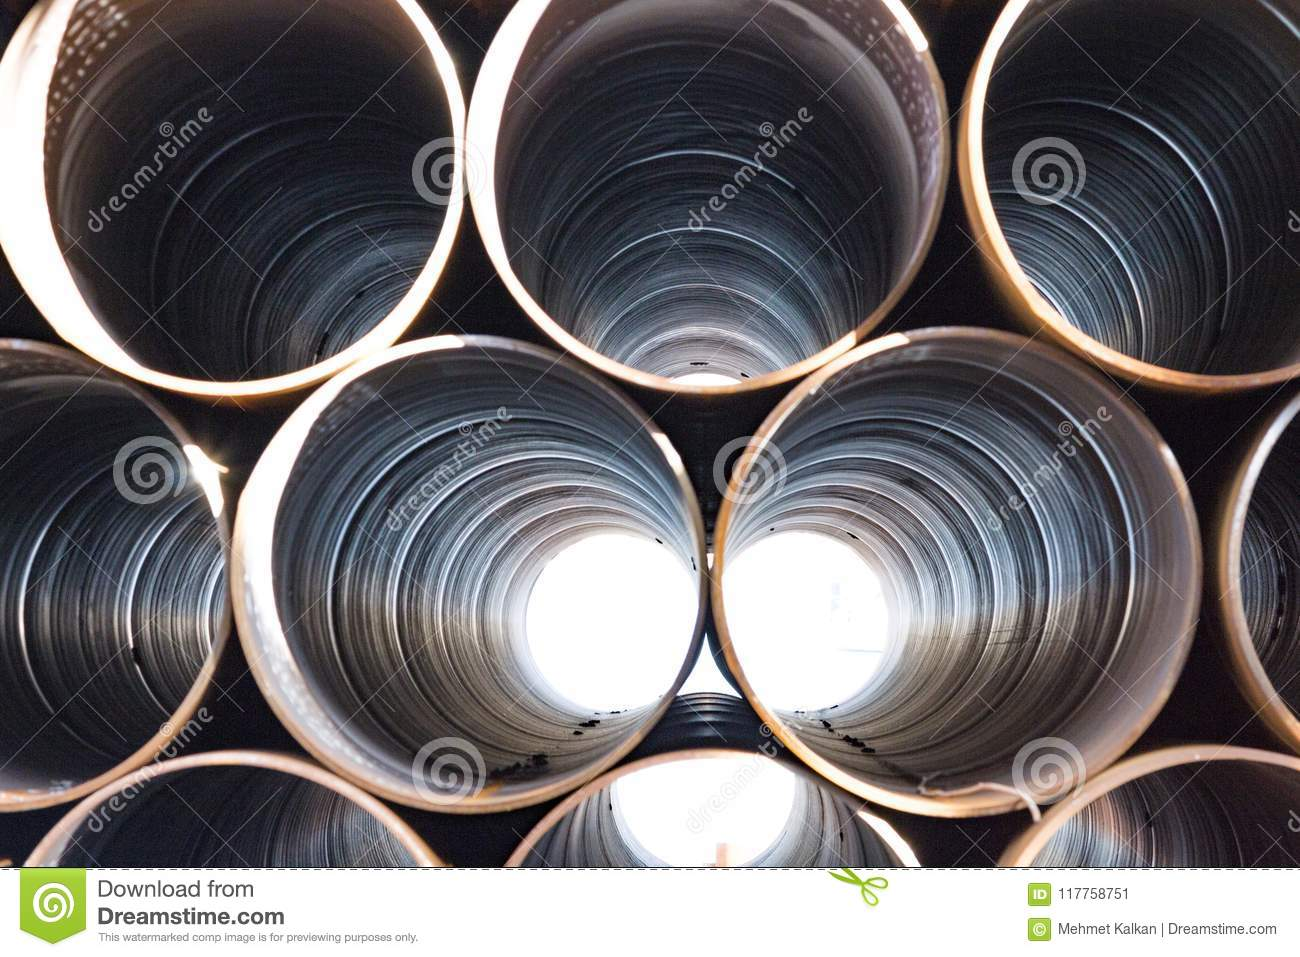 Warehouse factory sewer pipes